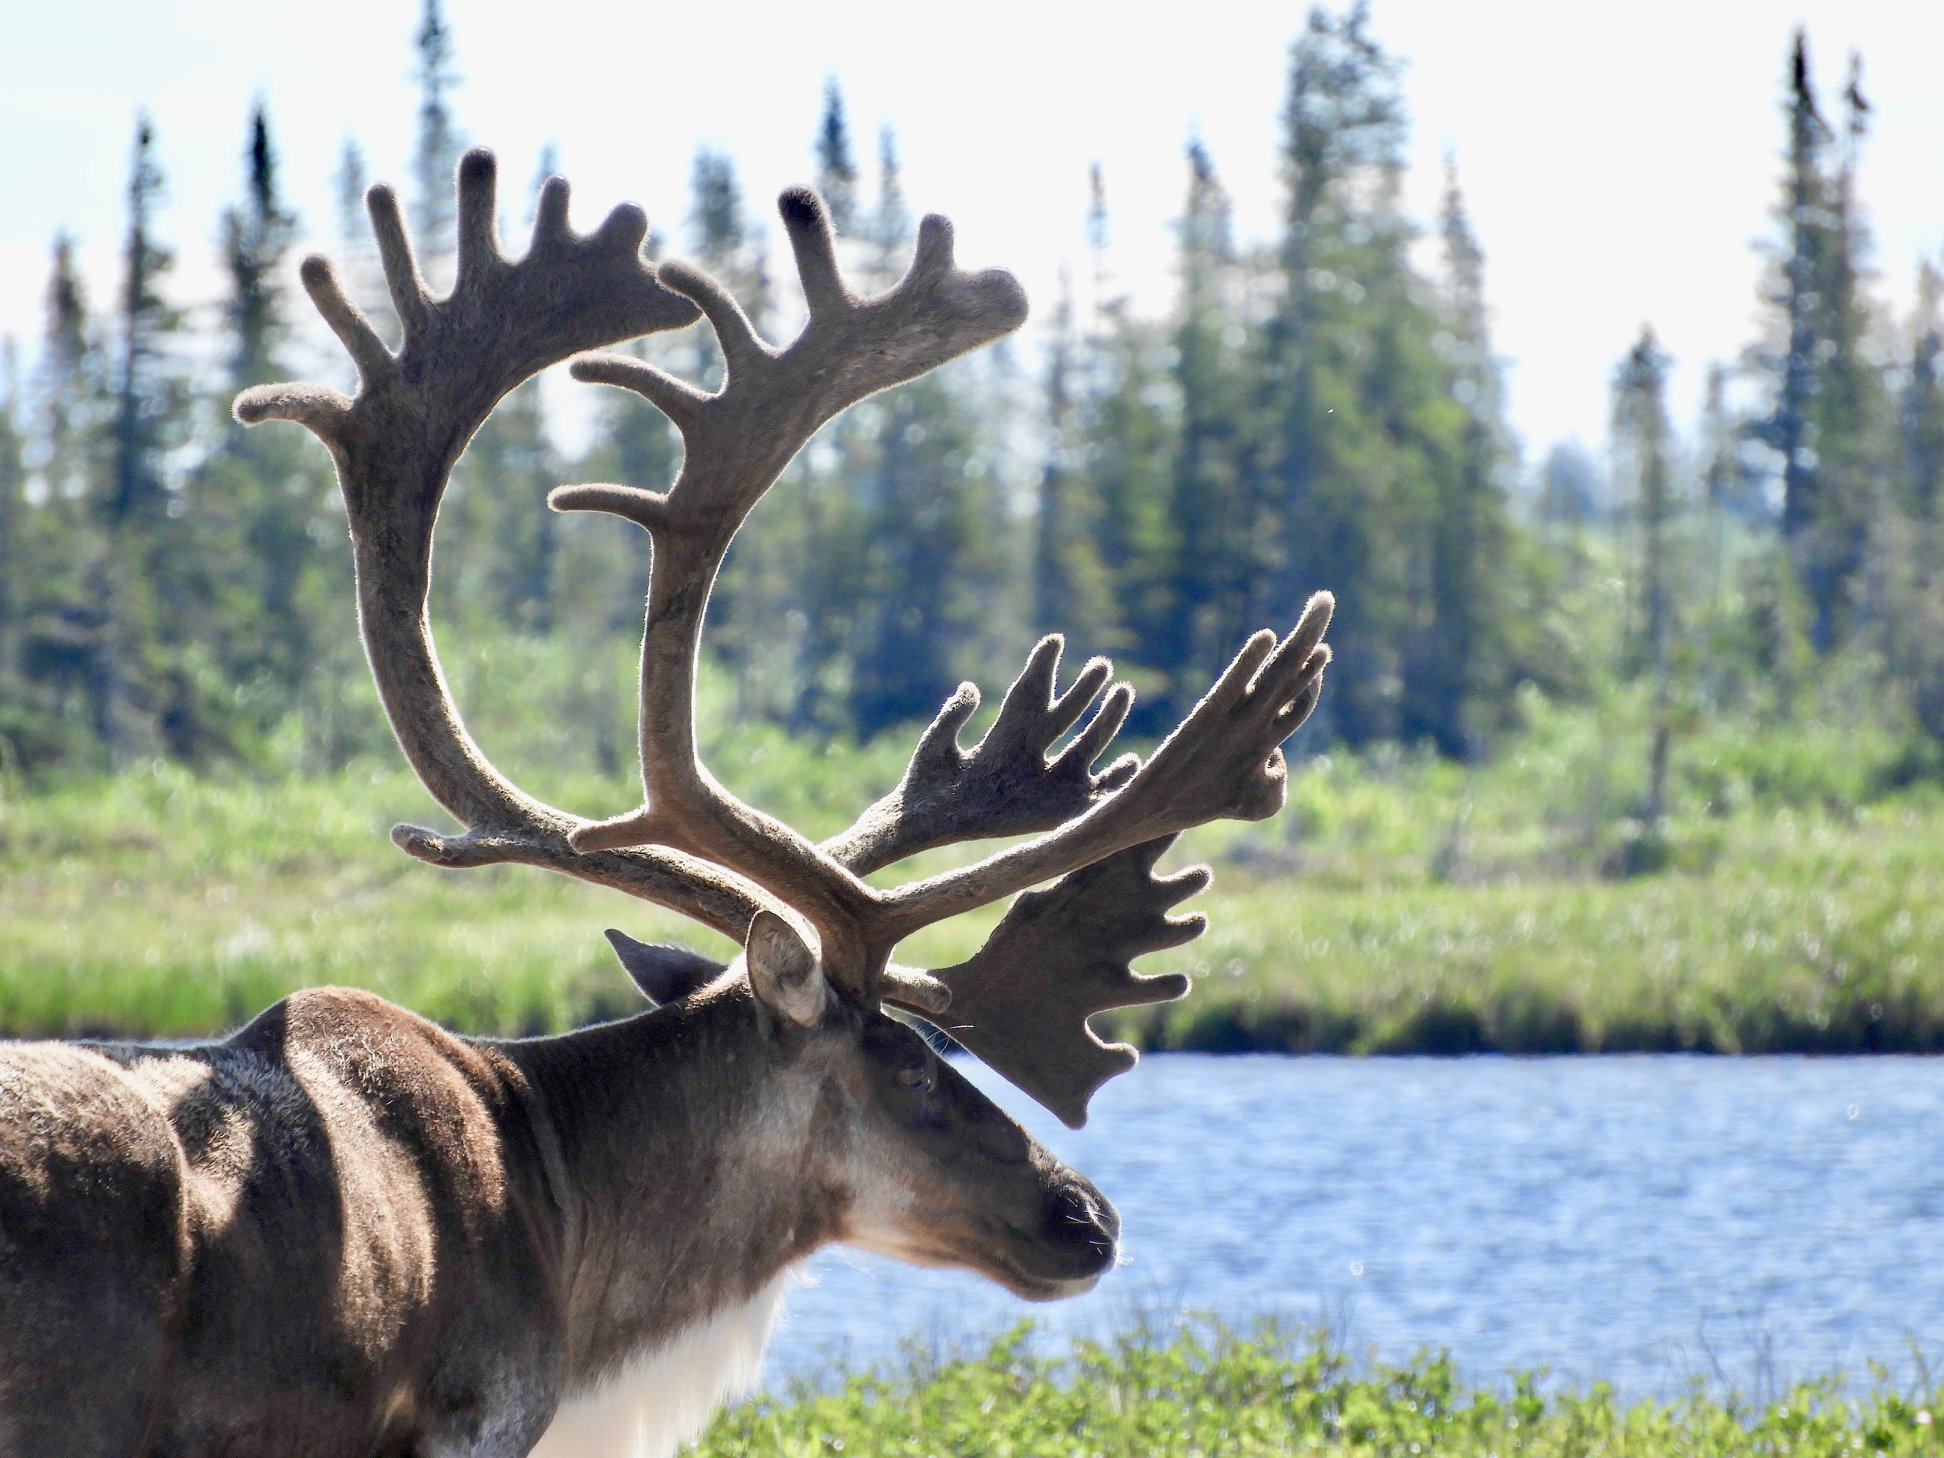 caribou in Churchill Manitoba